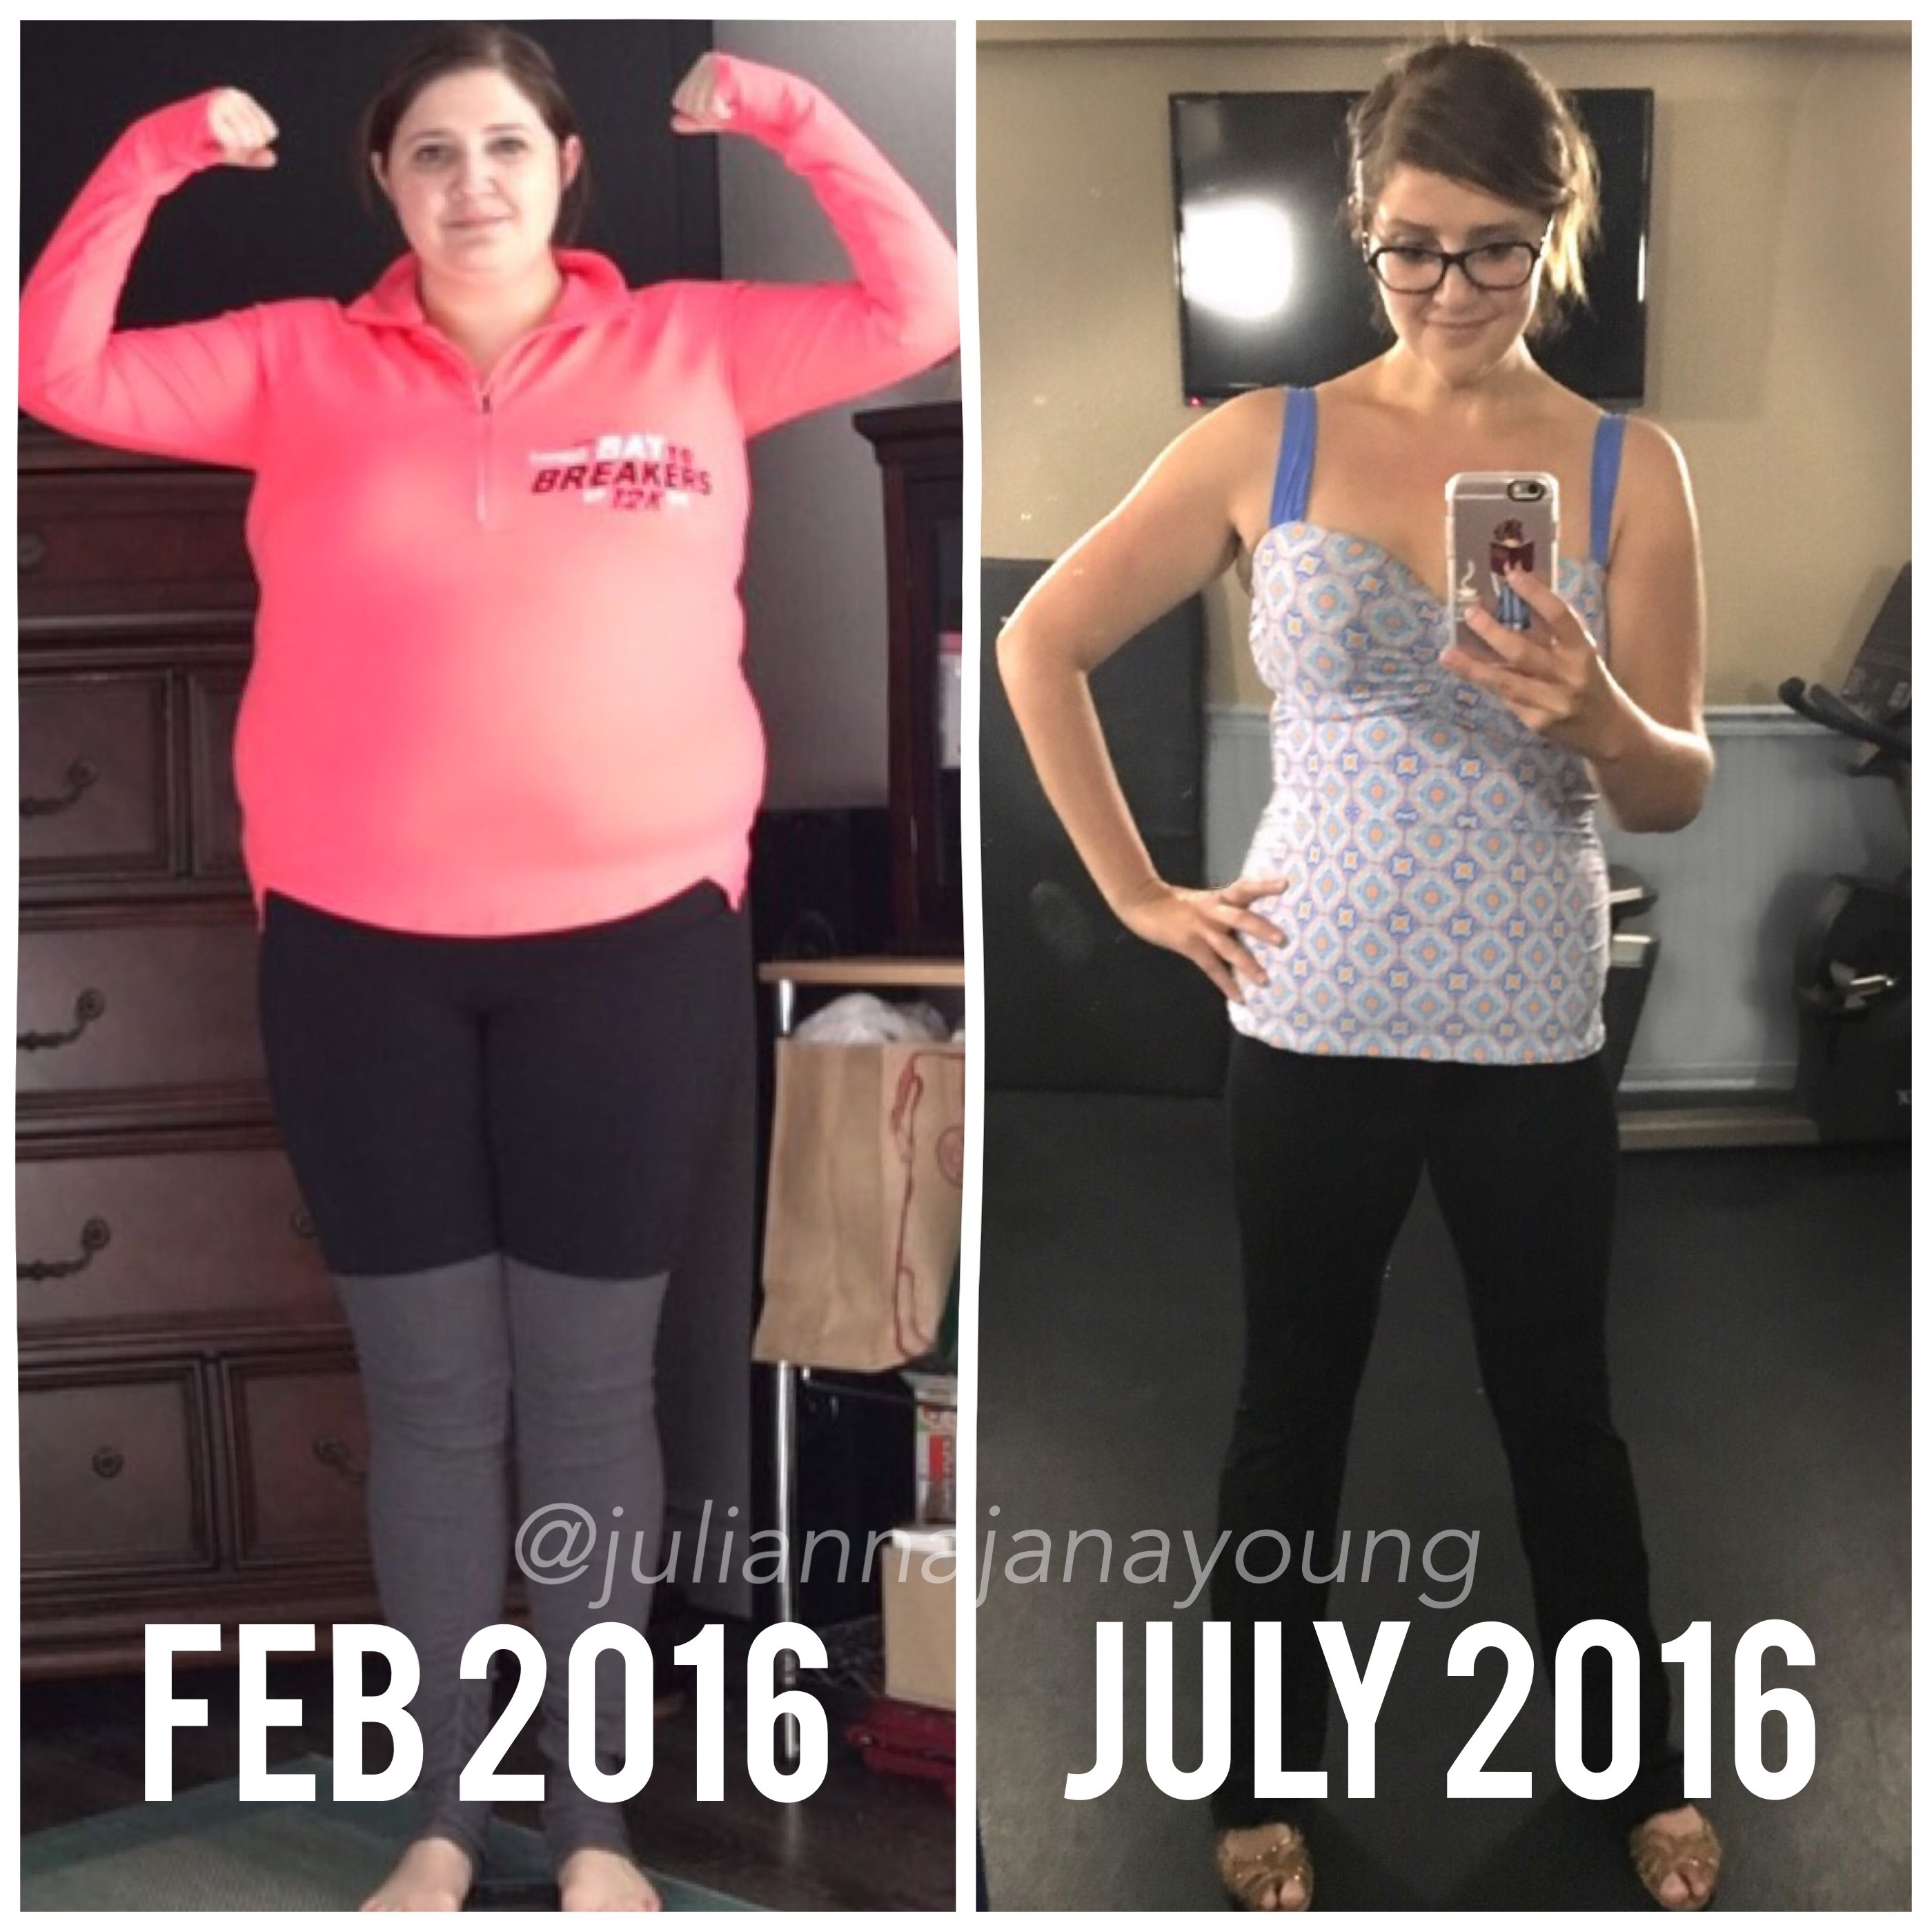 Great success story! Read before and after fitness transformation stories from women and men who hit weight loss goals and got THAT BODY with training and meal prep. Find inspiration, motivation, and workout tips | Changing the External by Changing the Internal